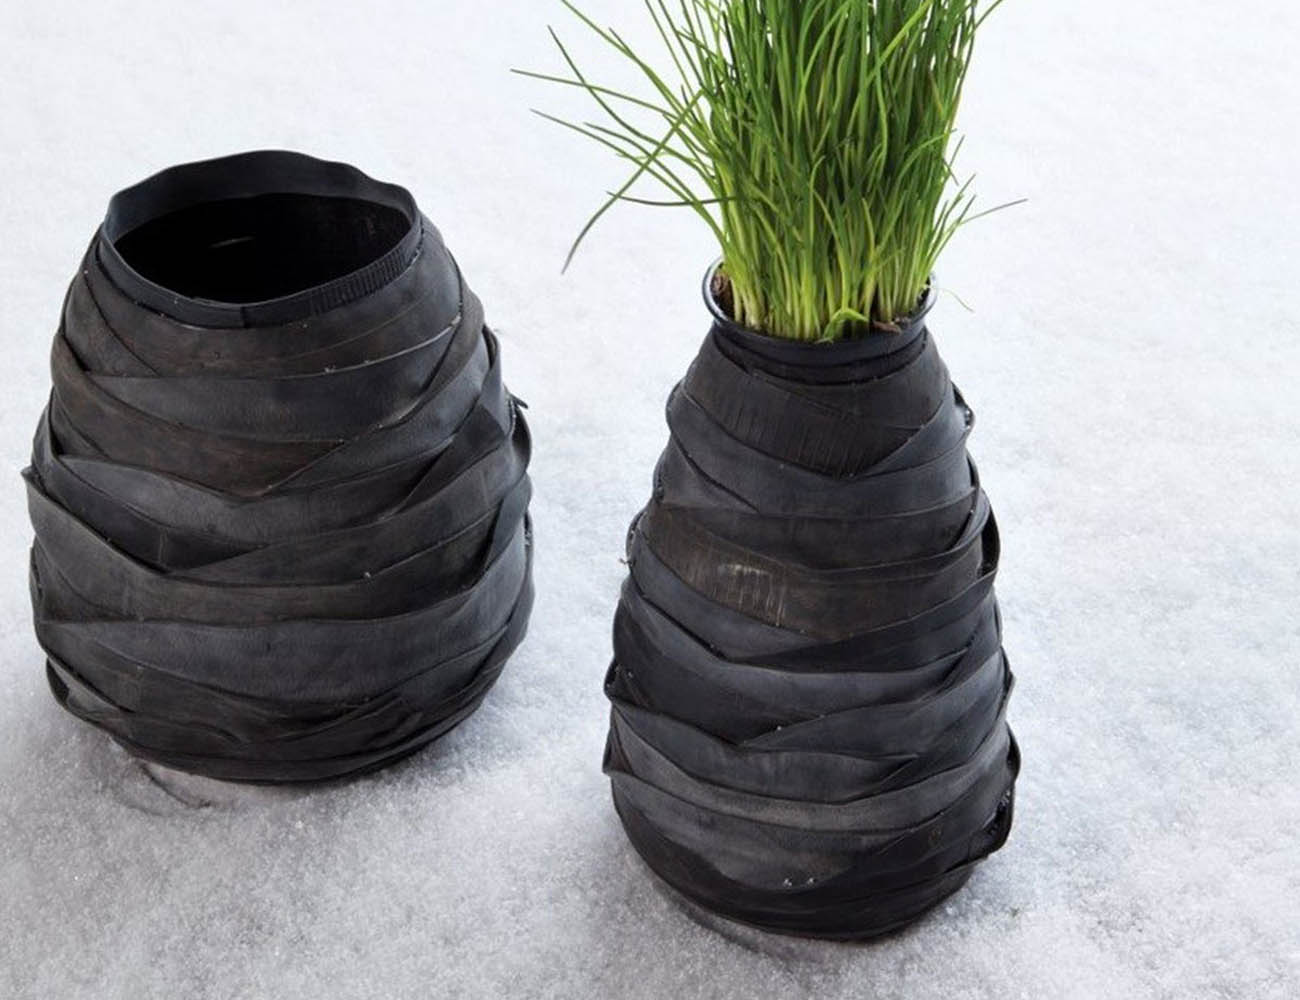 Rubber Ovale Vases by Serax